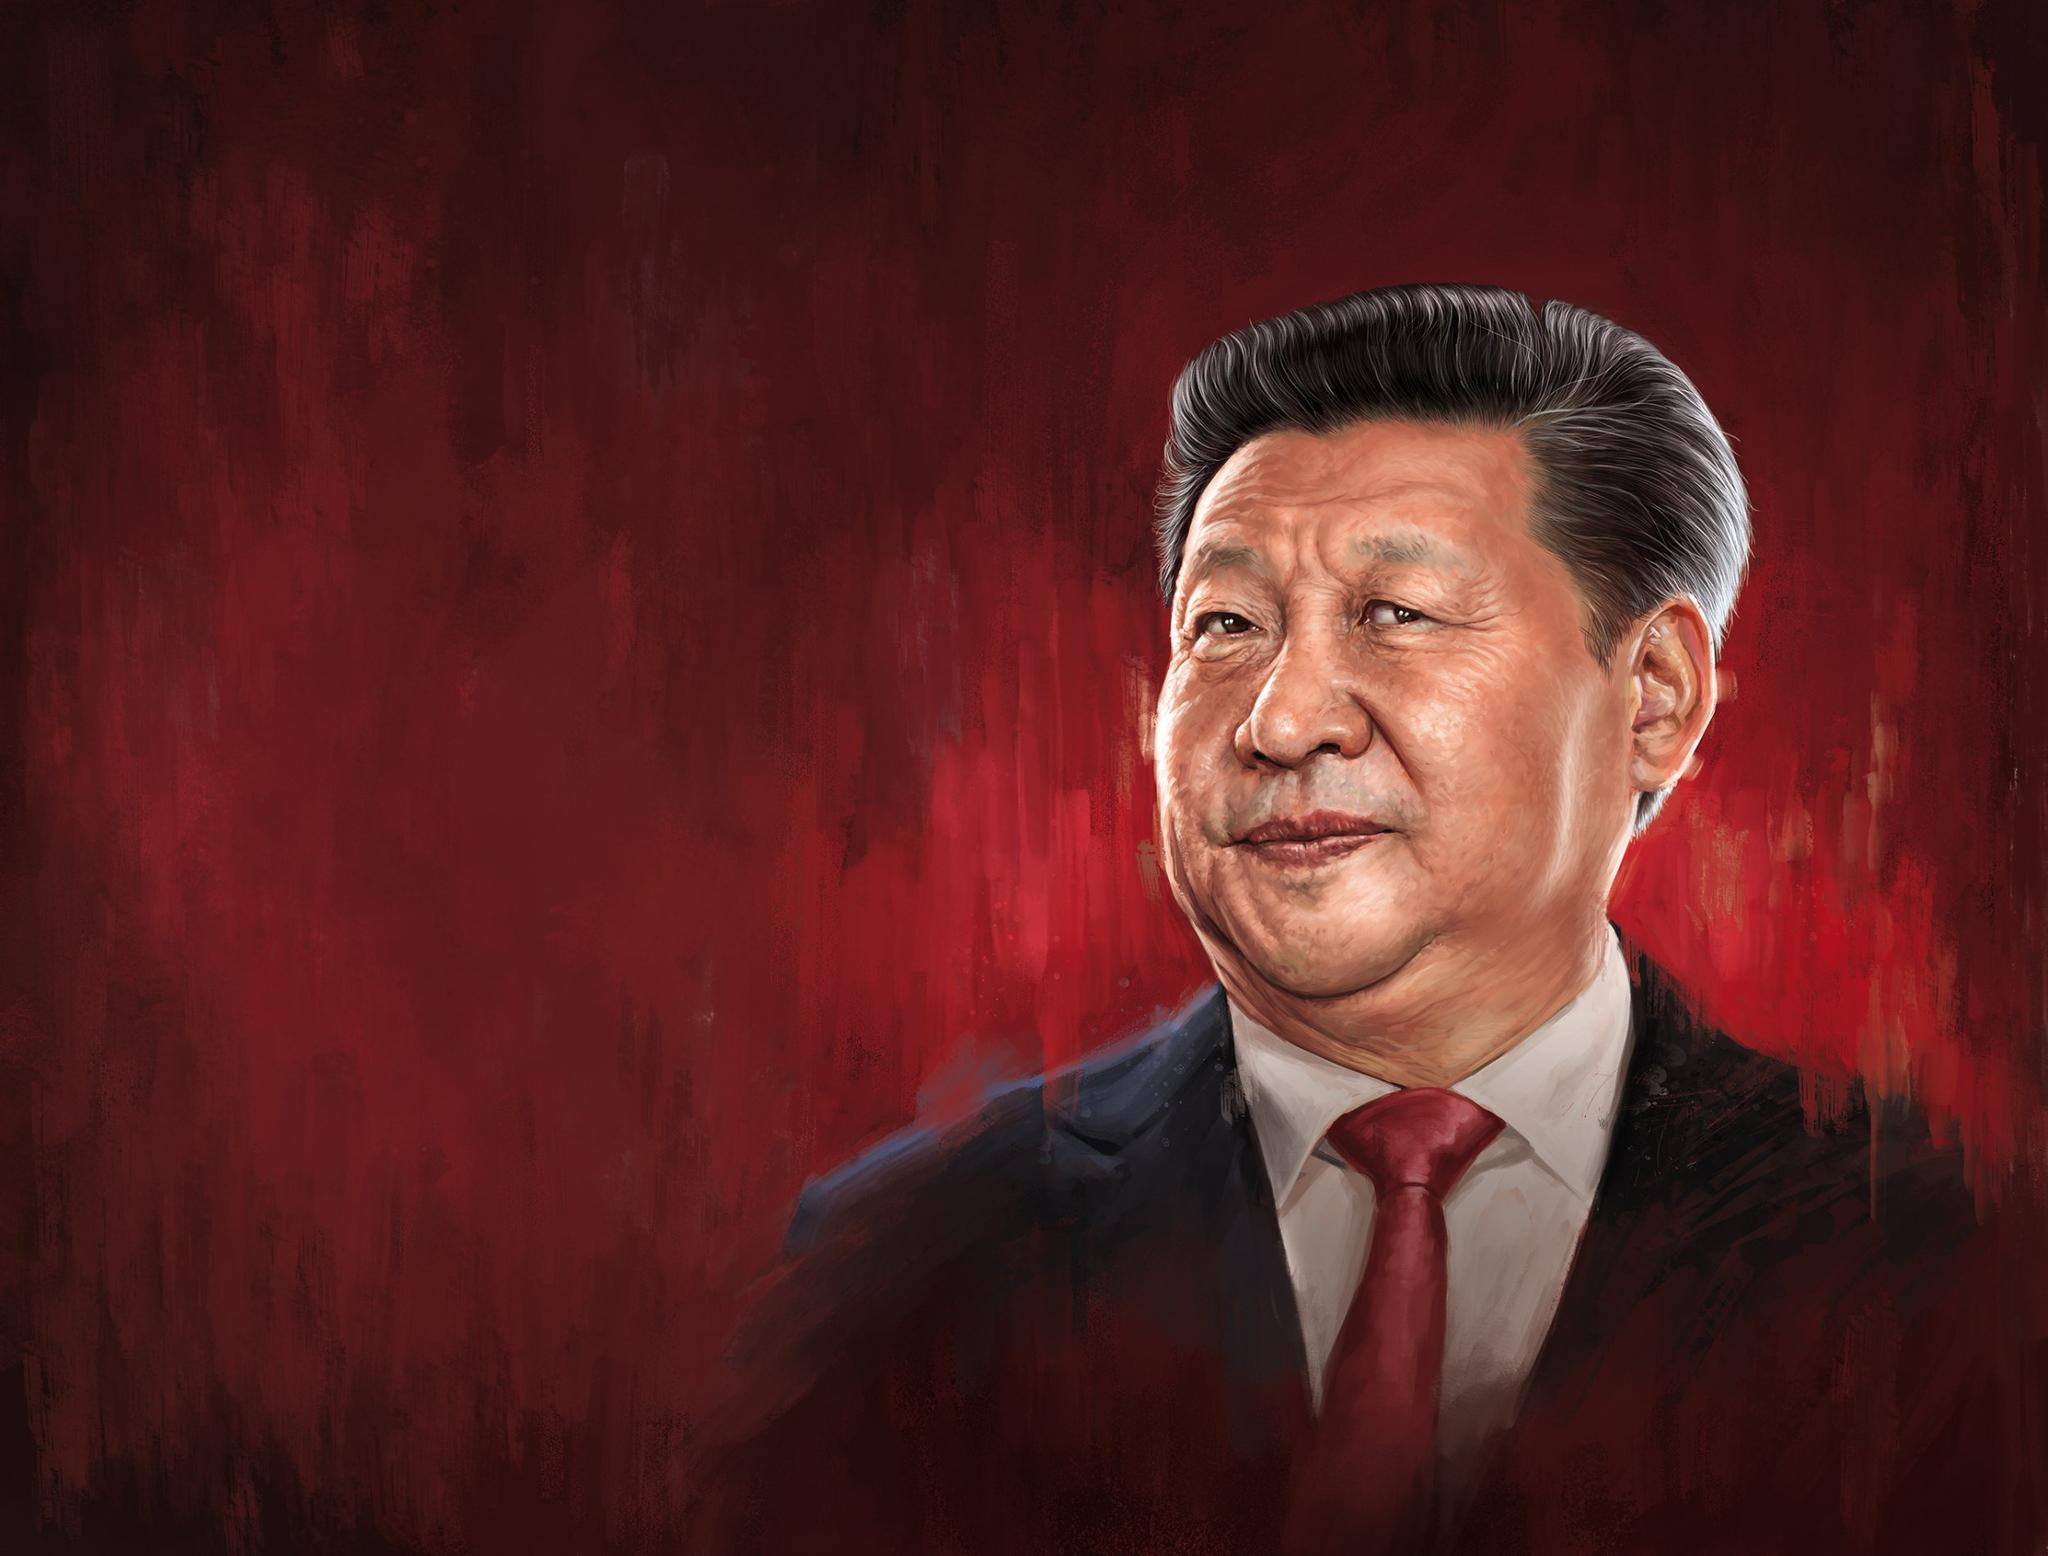 Chinese President Xi JinPing has an opportunity to position himself as a statesman, even as he cracks down on dissent at home.